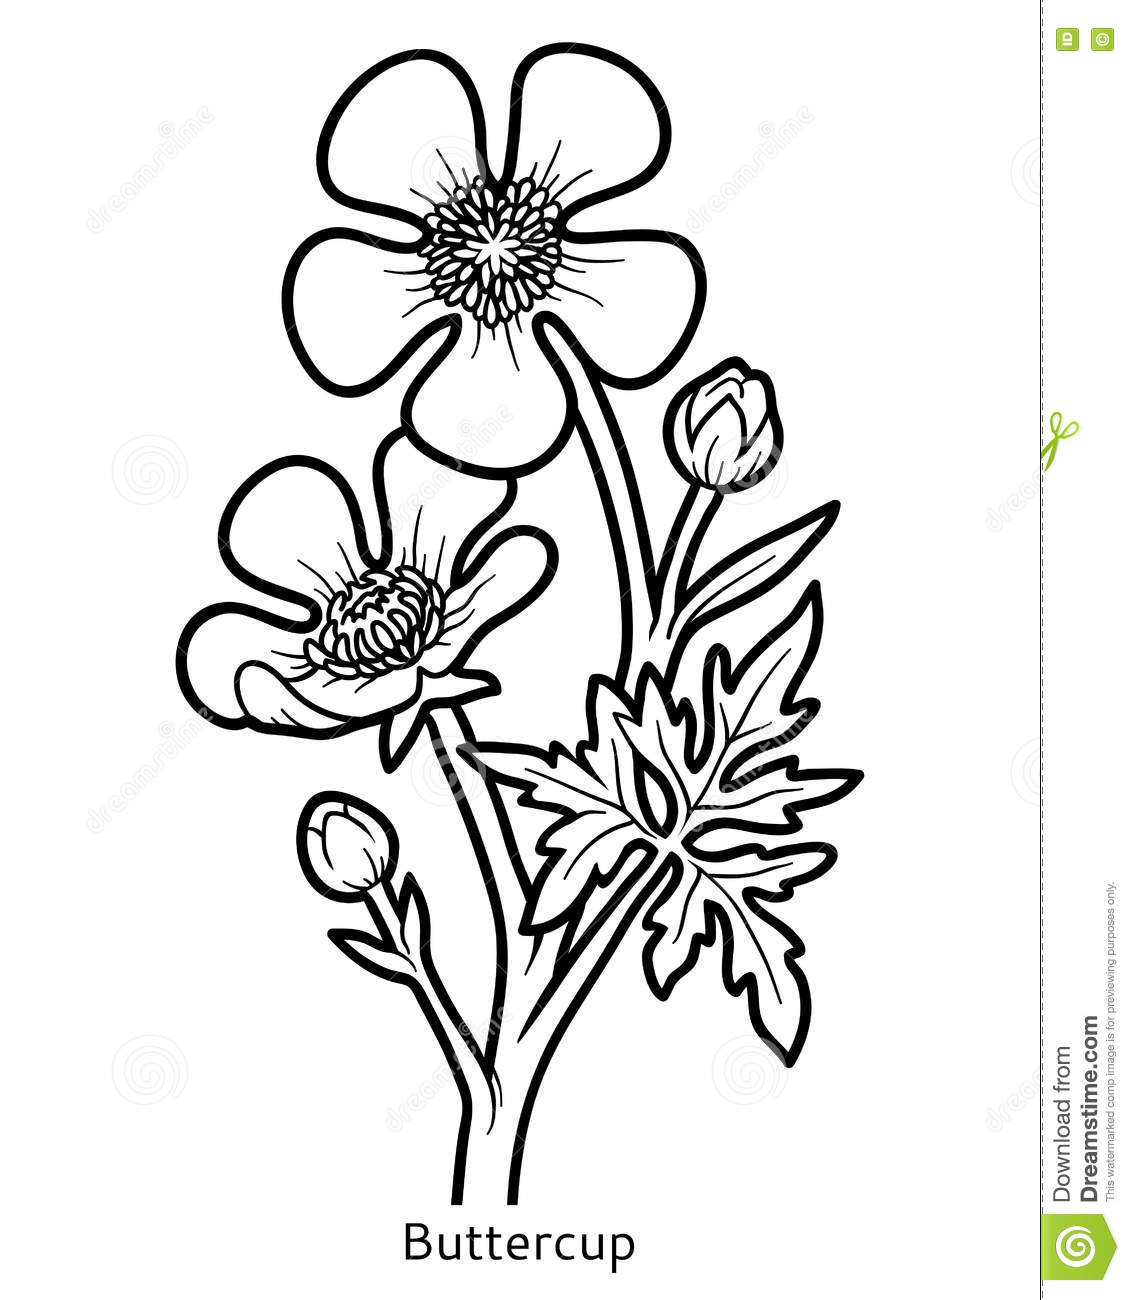 Coloring book flower buttercup stock vector image 79731504 for Buttercup flower coloring pages